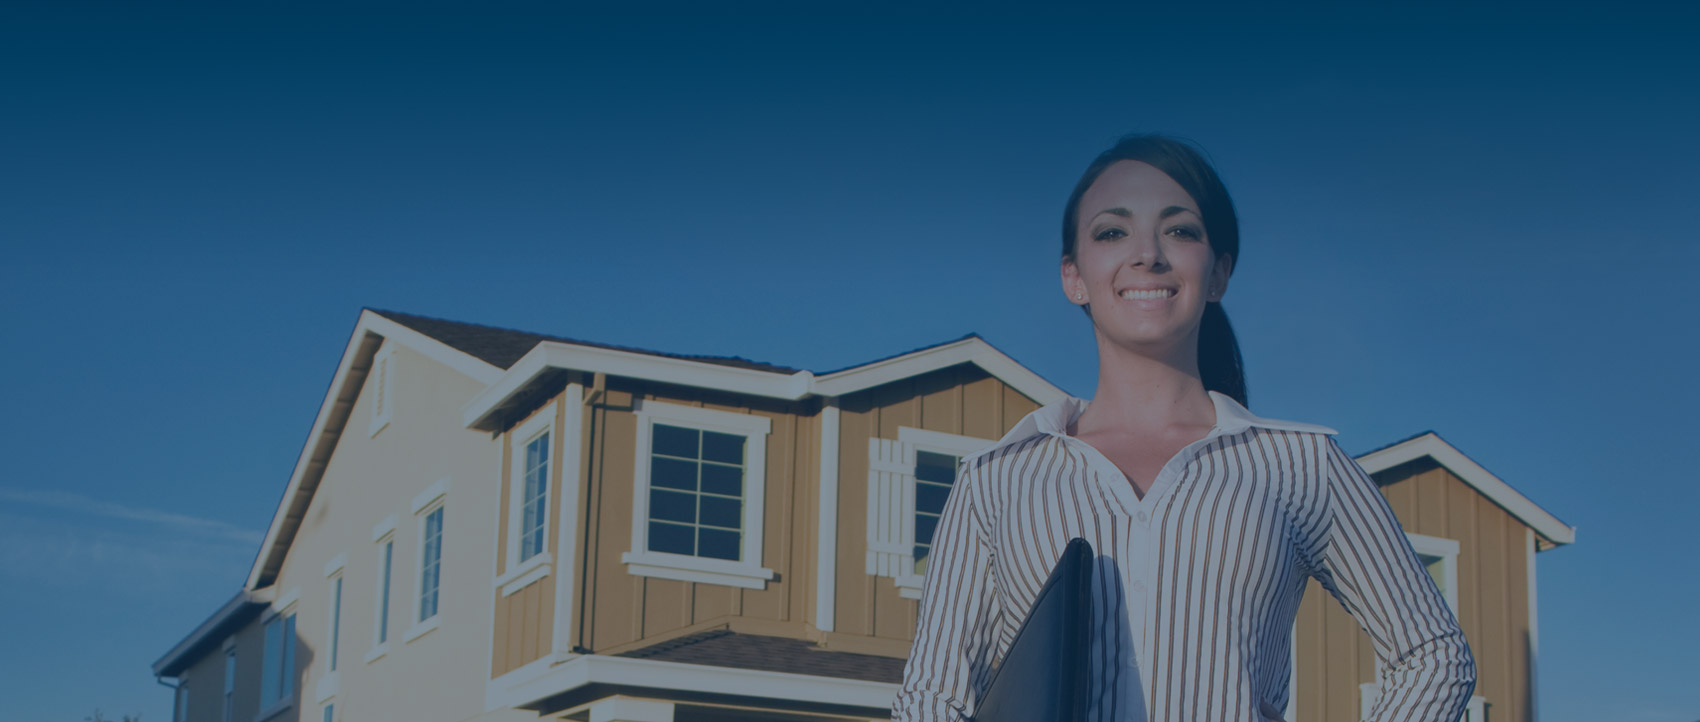 Home Inspection Checklist in Billings